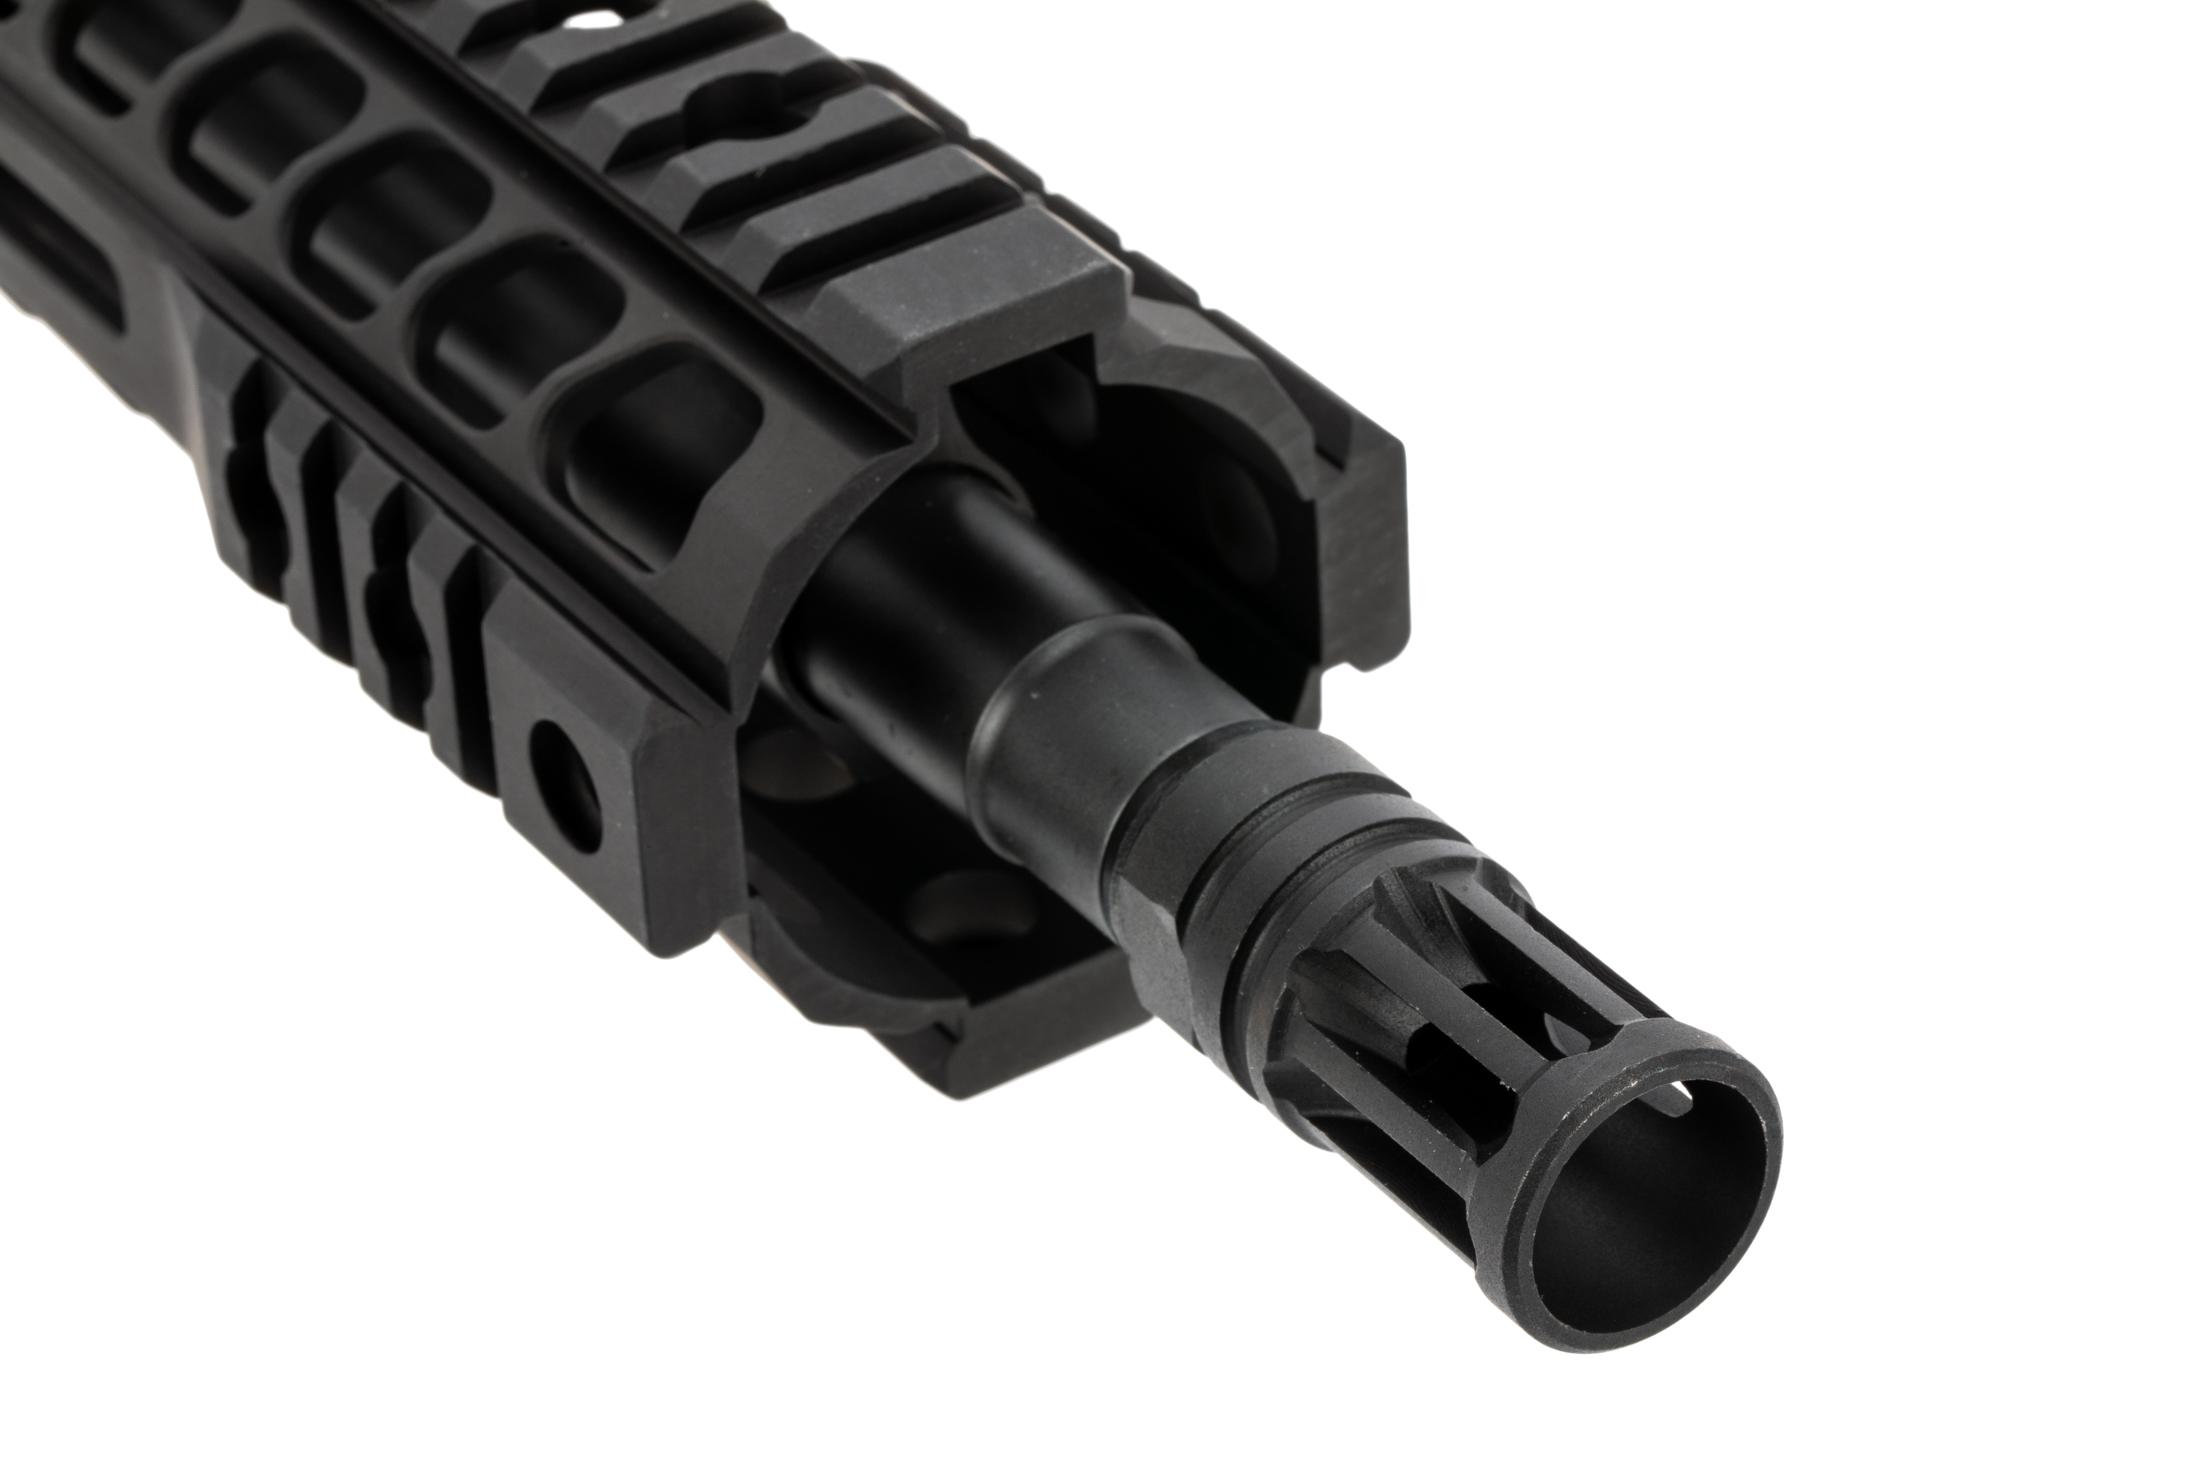 The Radical Firearms barreled upper receiver features an A2 style compensator